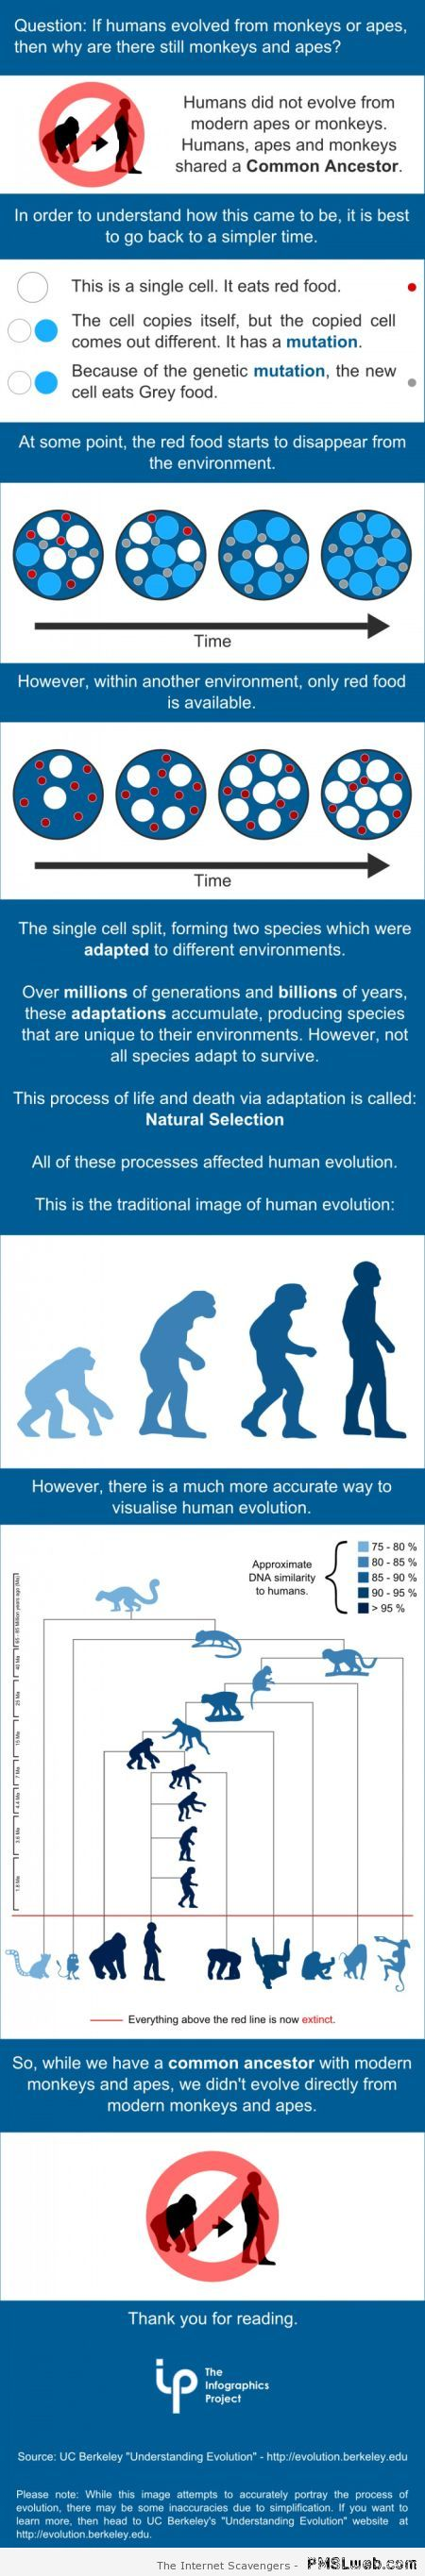 Evolution explained at PMSLweb.com